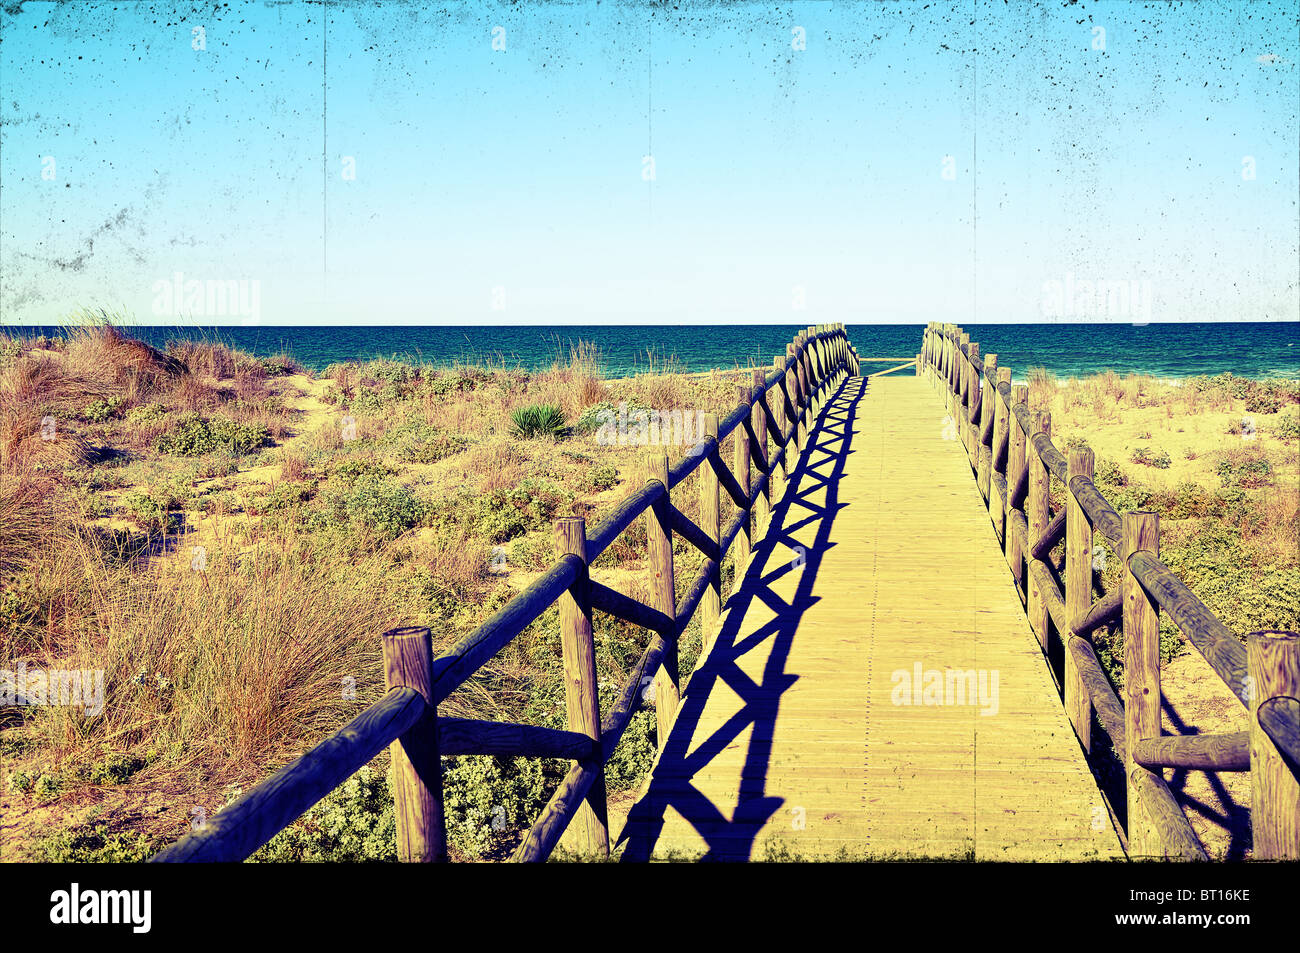 wooden bridge over beach dunes with a cross process and vigneting effect to look grungy and old - Stock Image